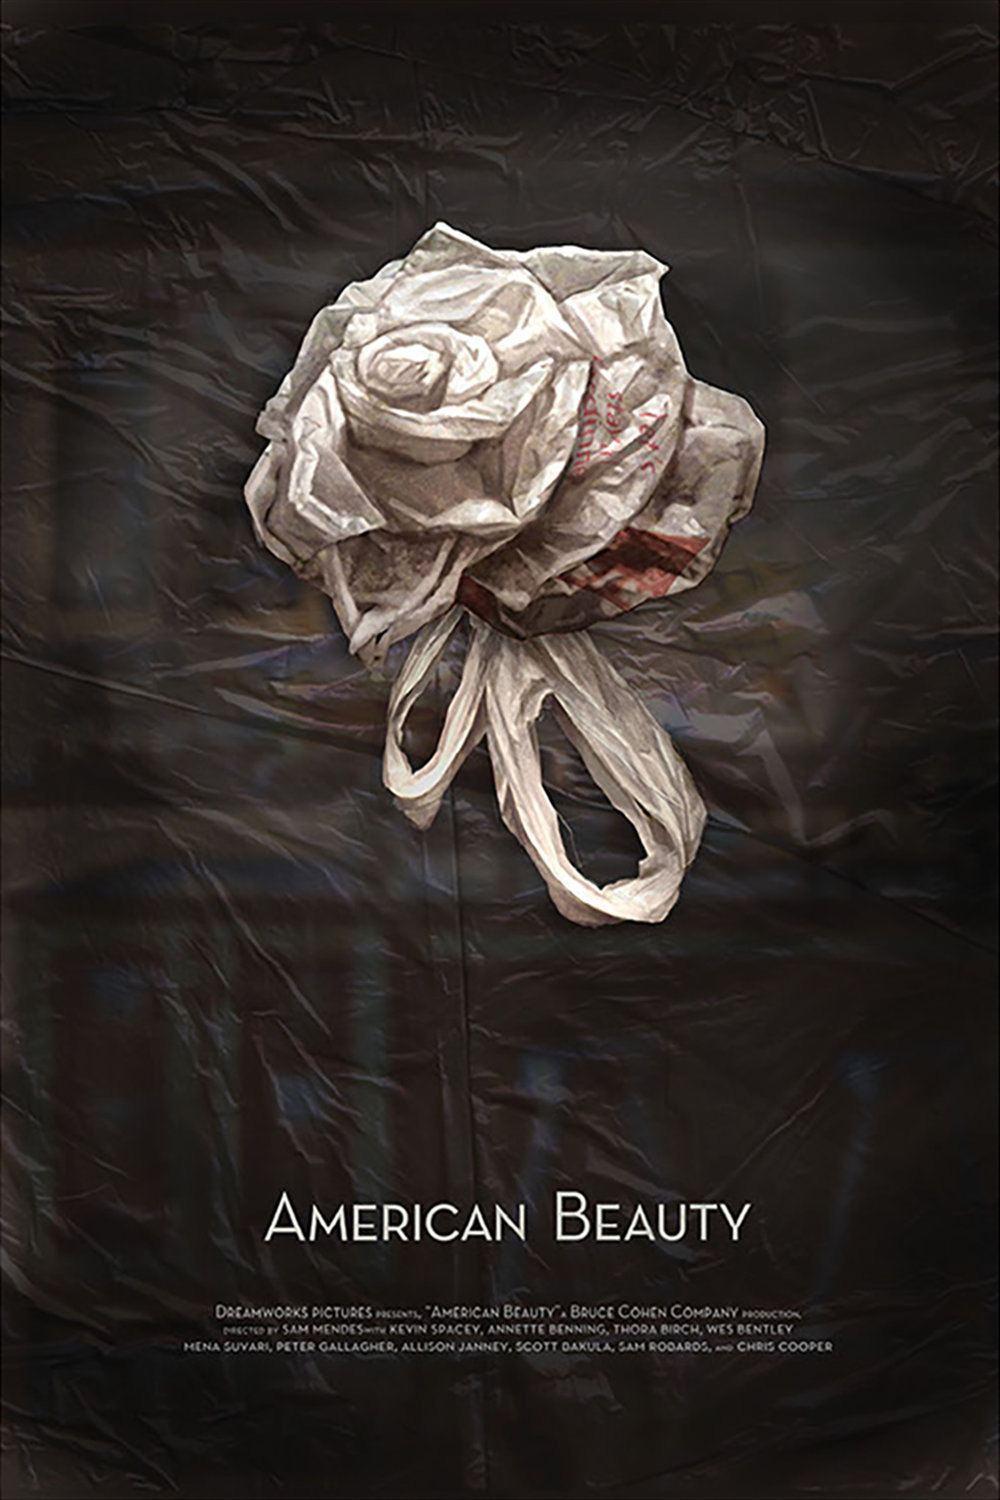 American Beauty by Stephanie Toole